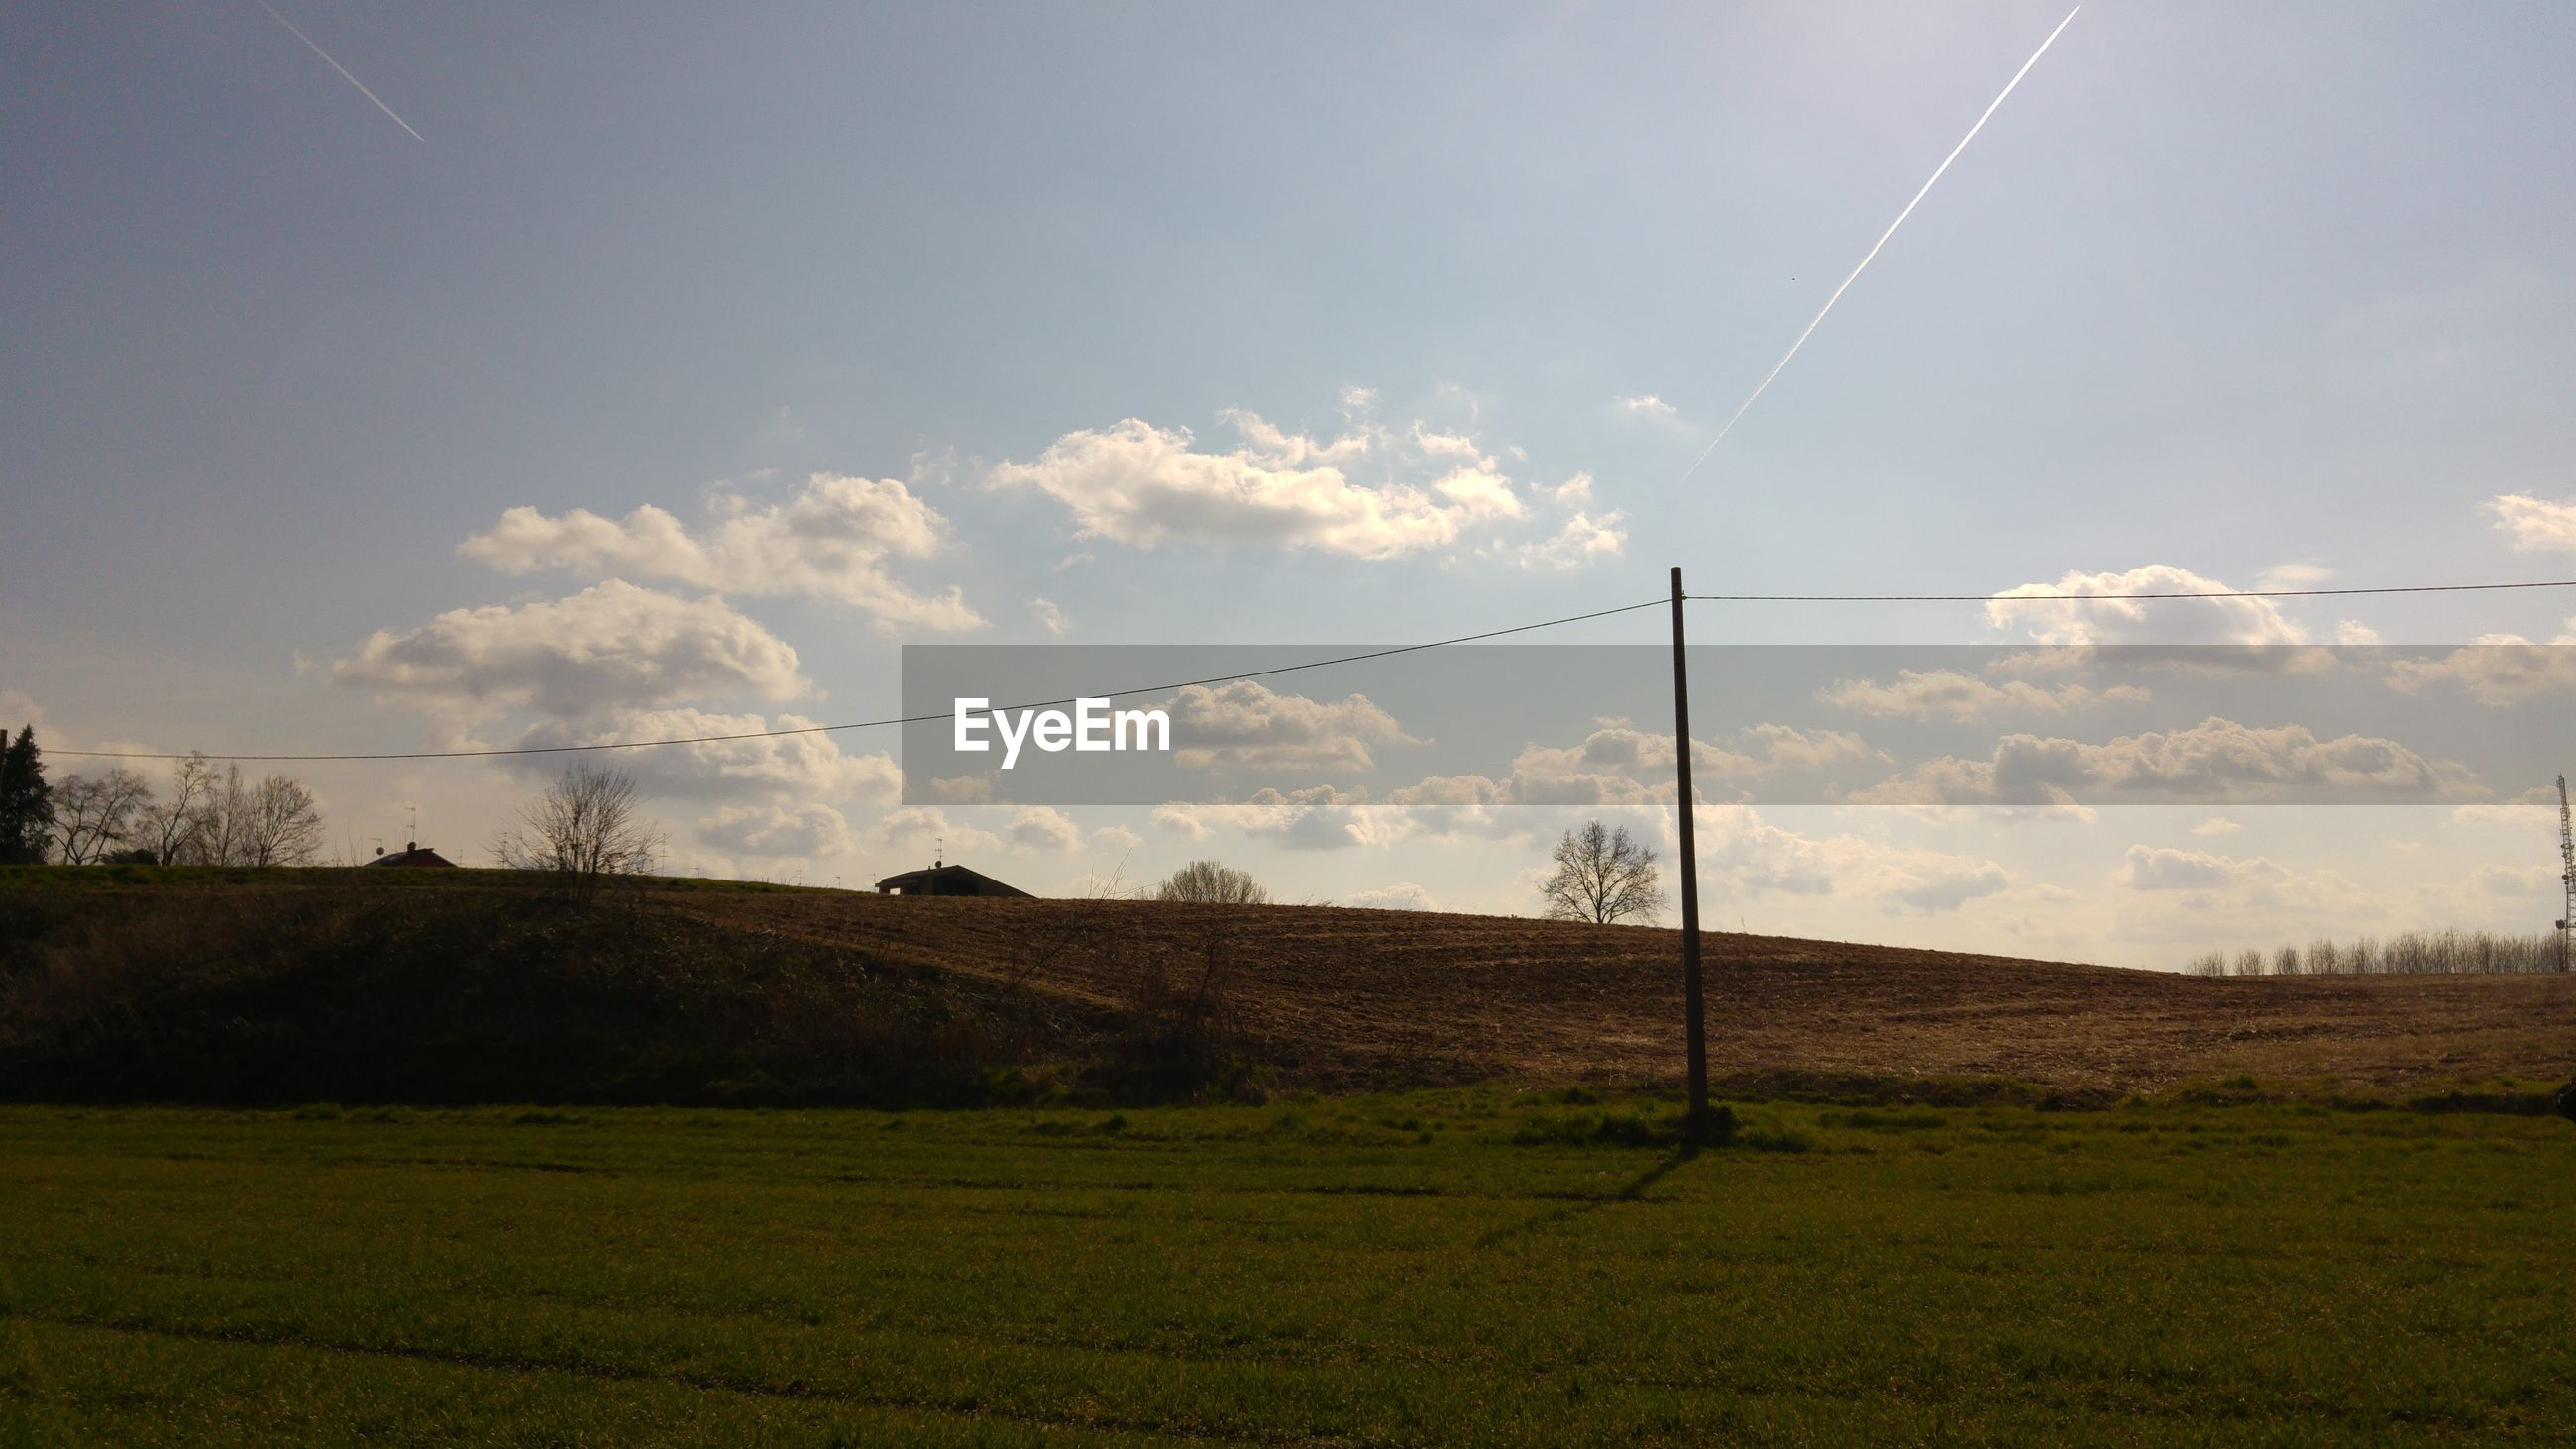 field, landscape, sky, tranquil scene, tranquility, grass, power line, electricity pylon, scenics, nature, beauty in nature, tree, electricity, rural scene, grassy, growth, cable, power supply, cloud - sky, non-urban scene